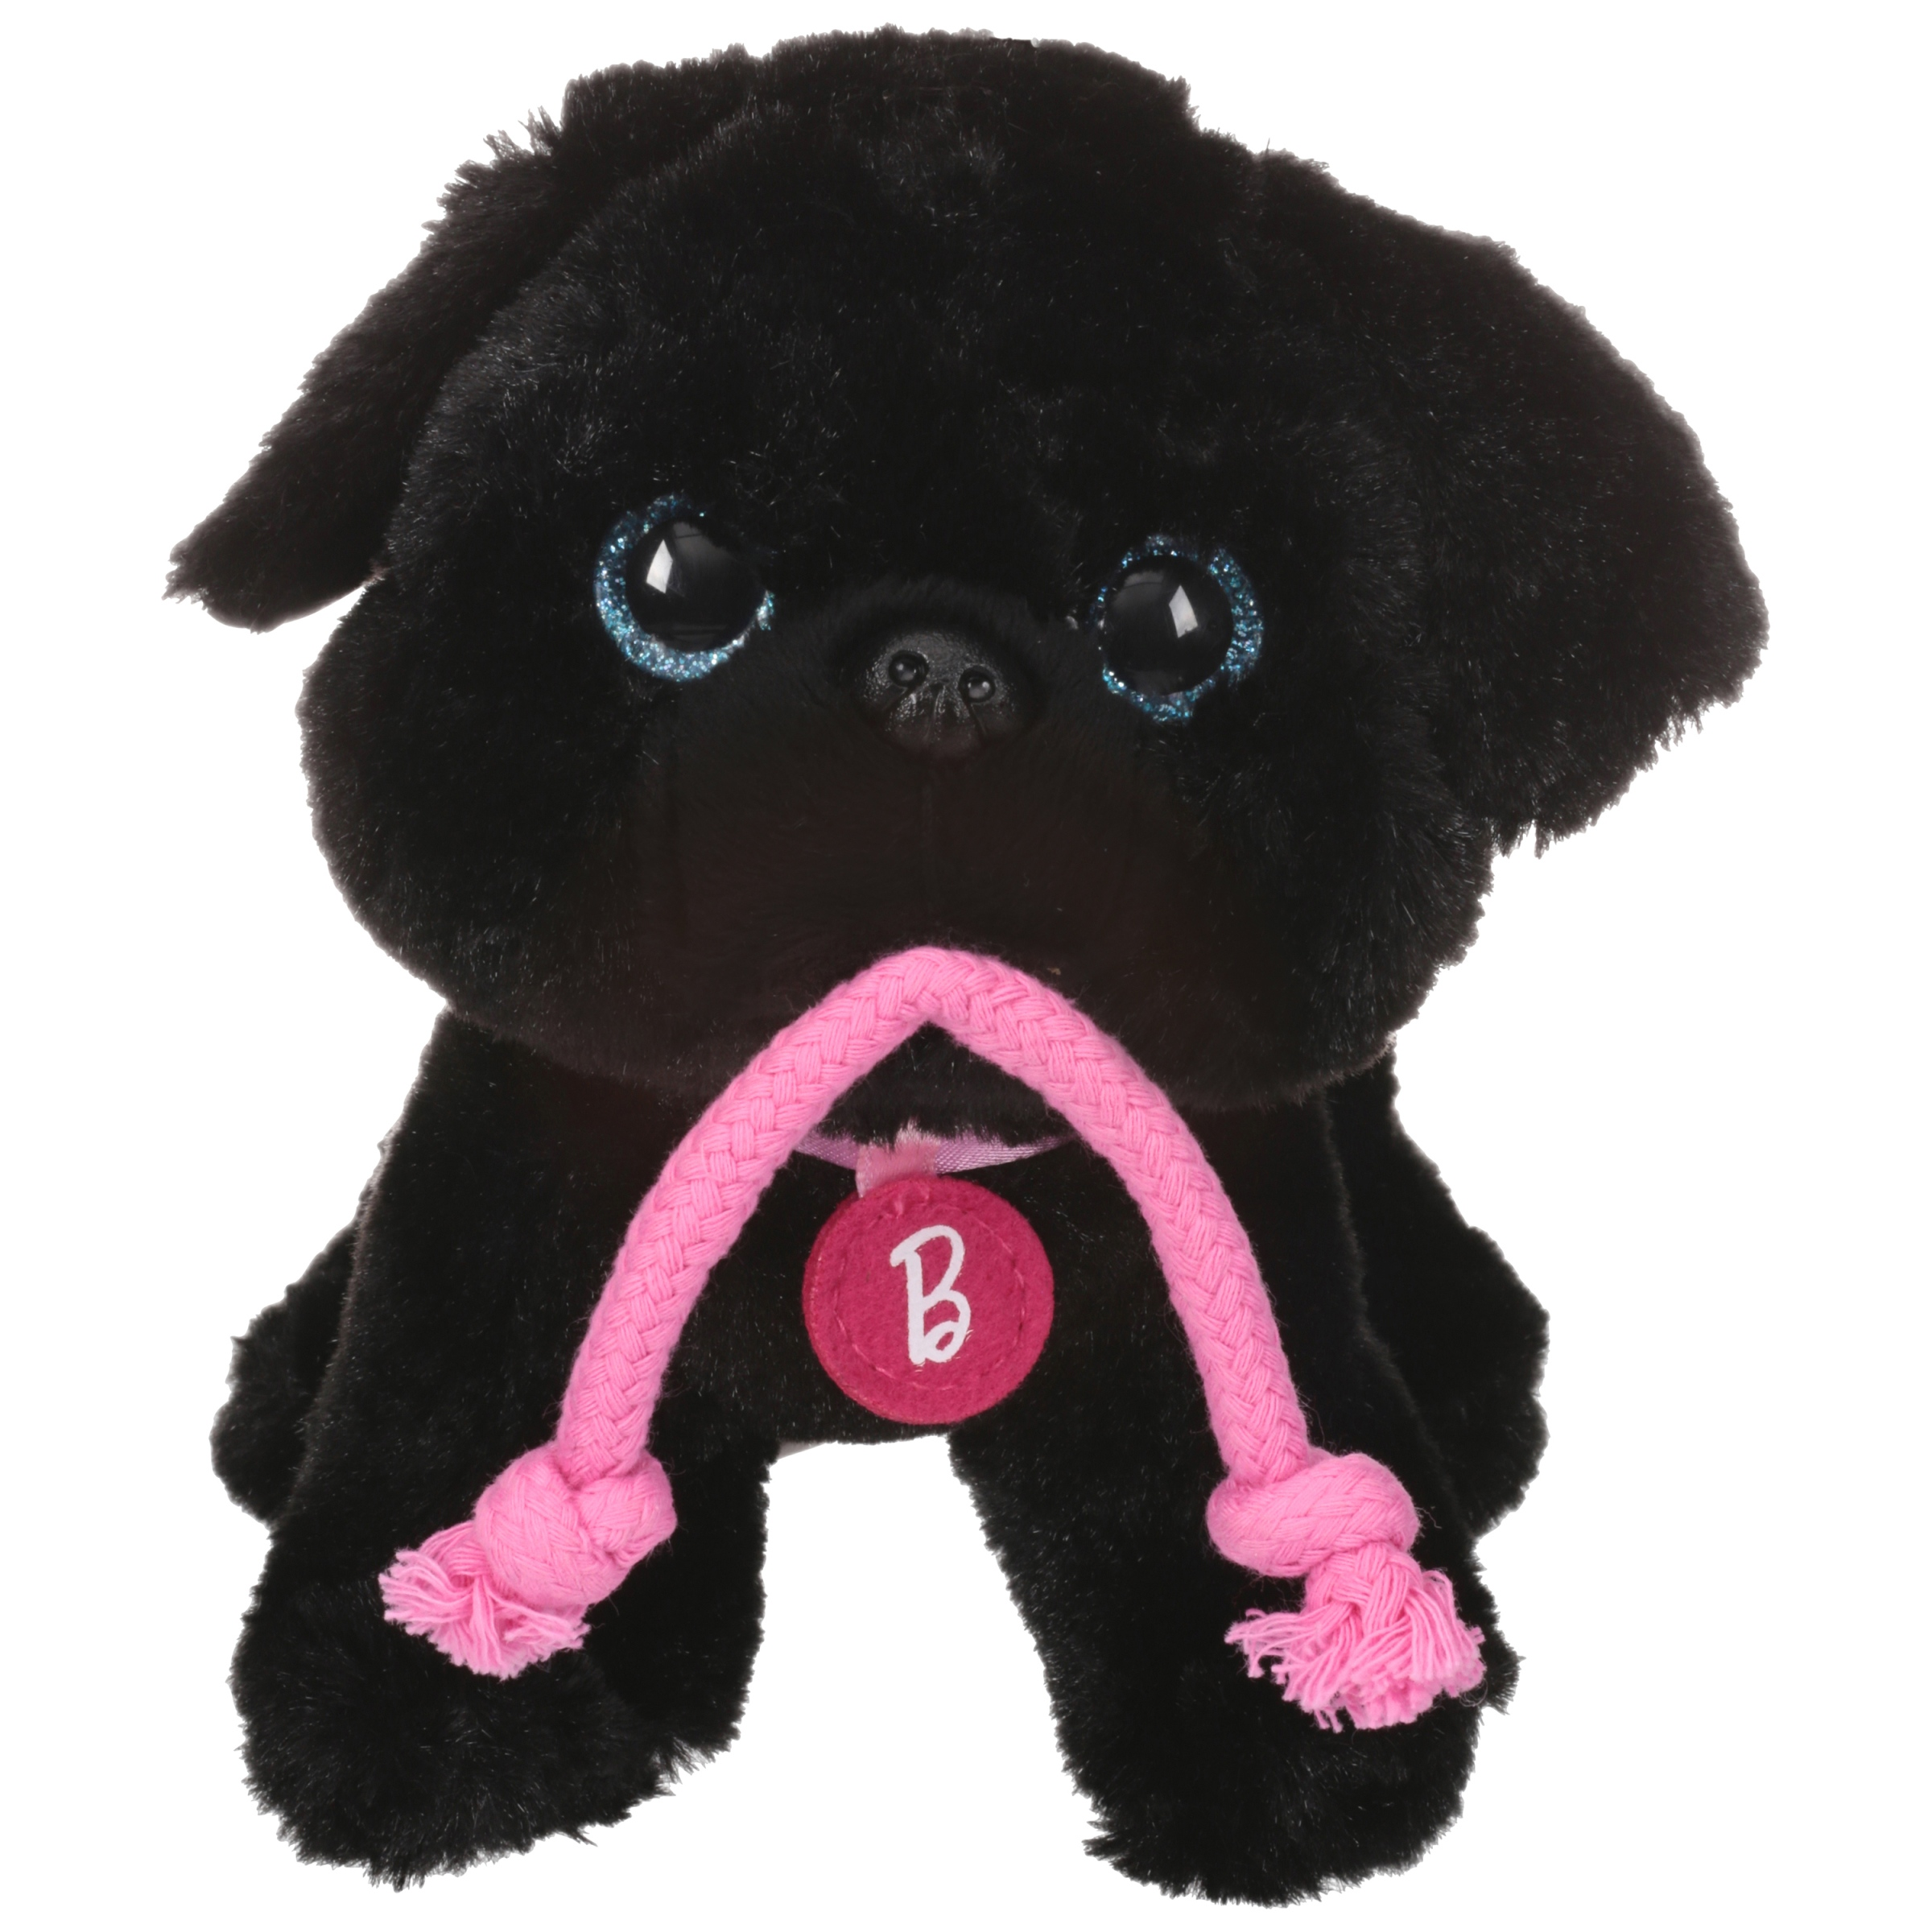 Barbie Puppy Adventure Beans Plush Pug